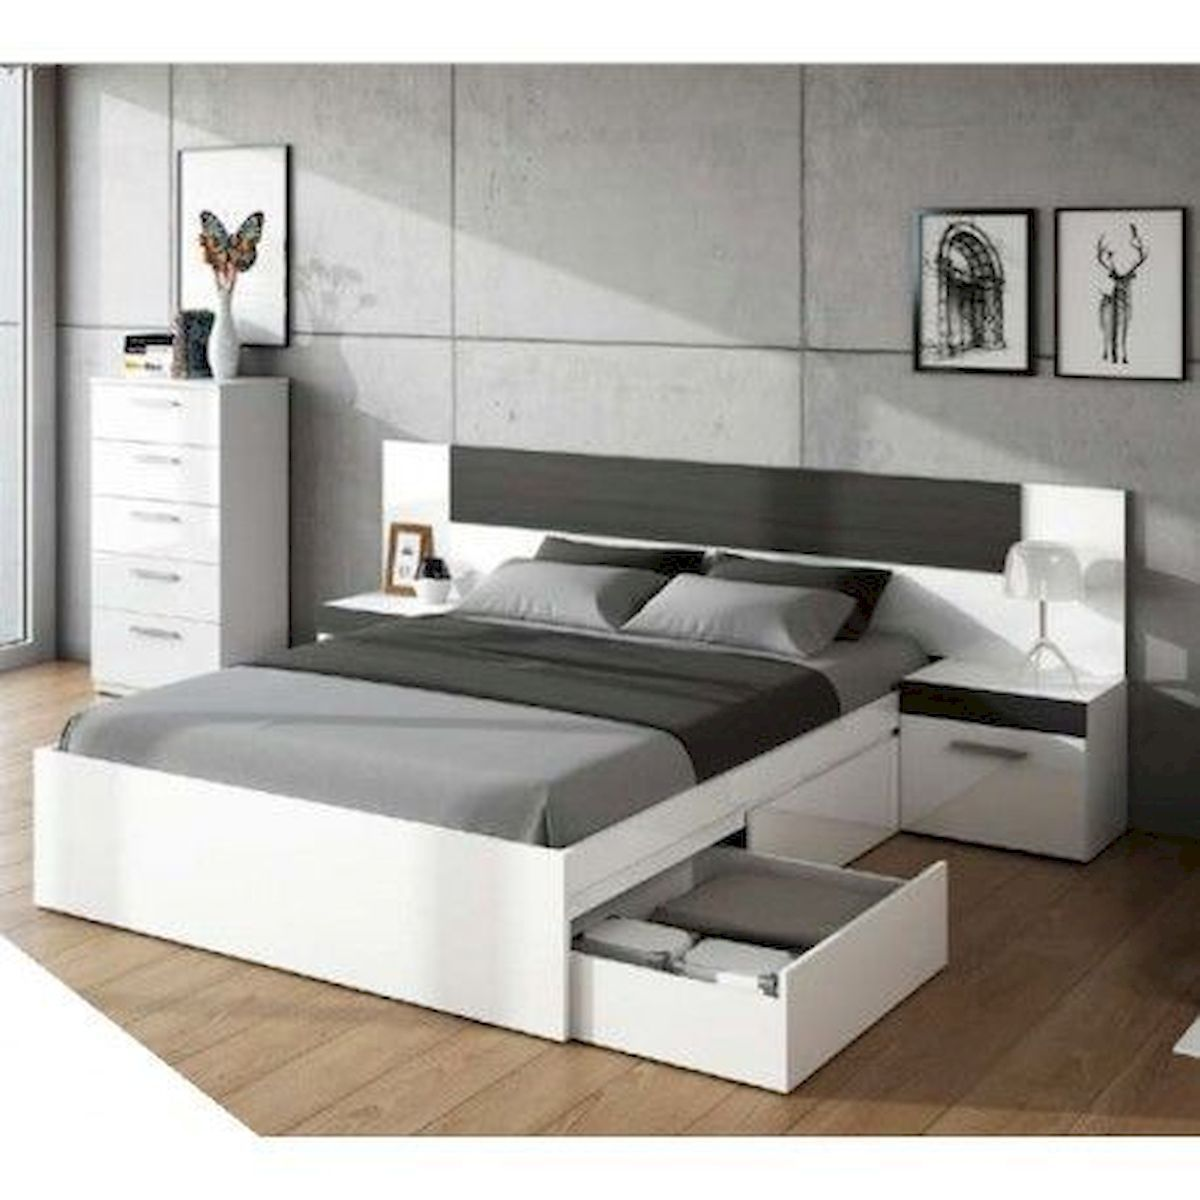 60 Brilliant SpaceSaving Ideas For Small Bedroom in 2020